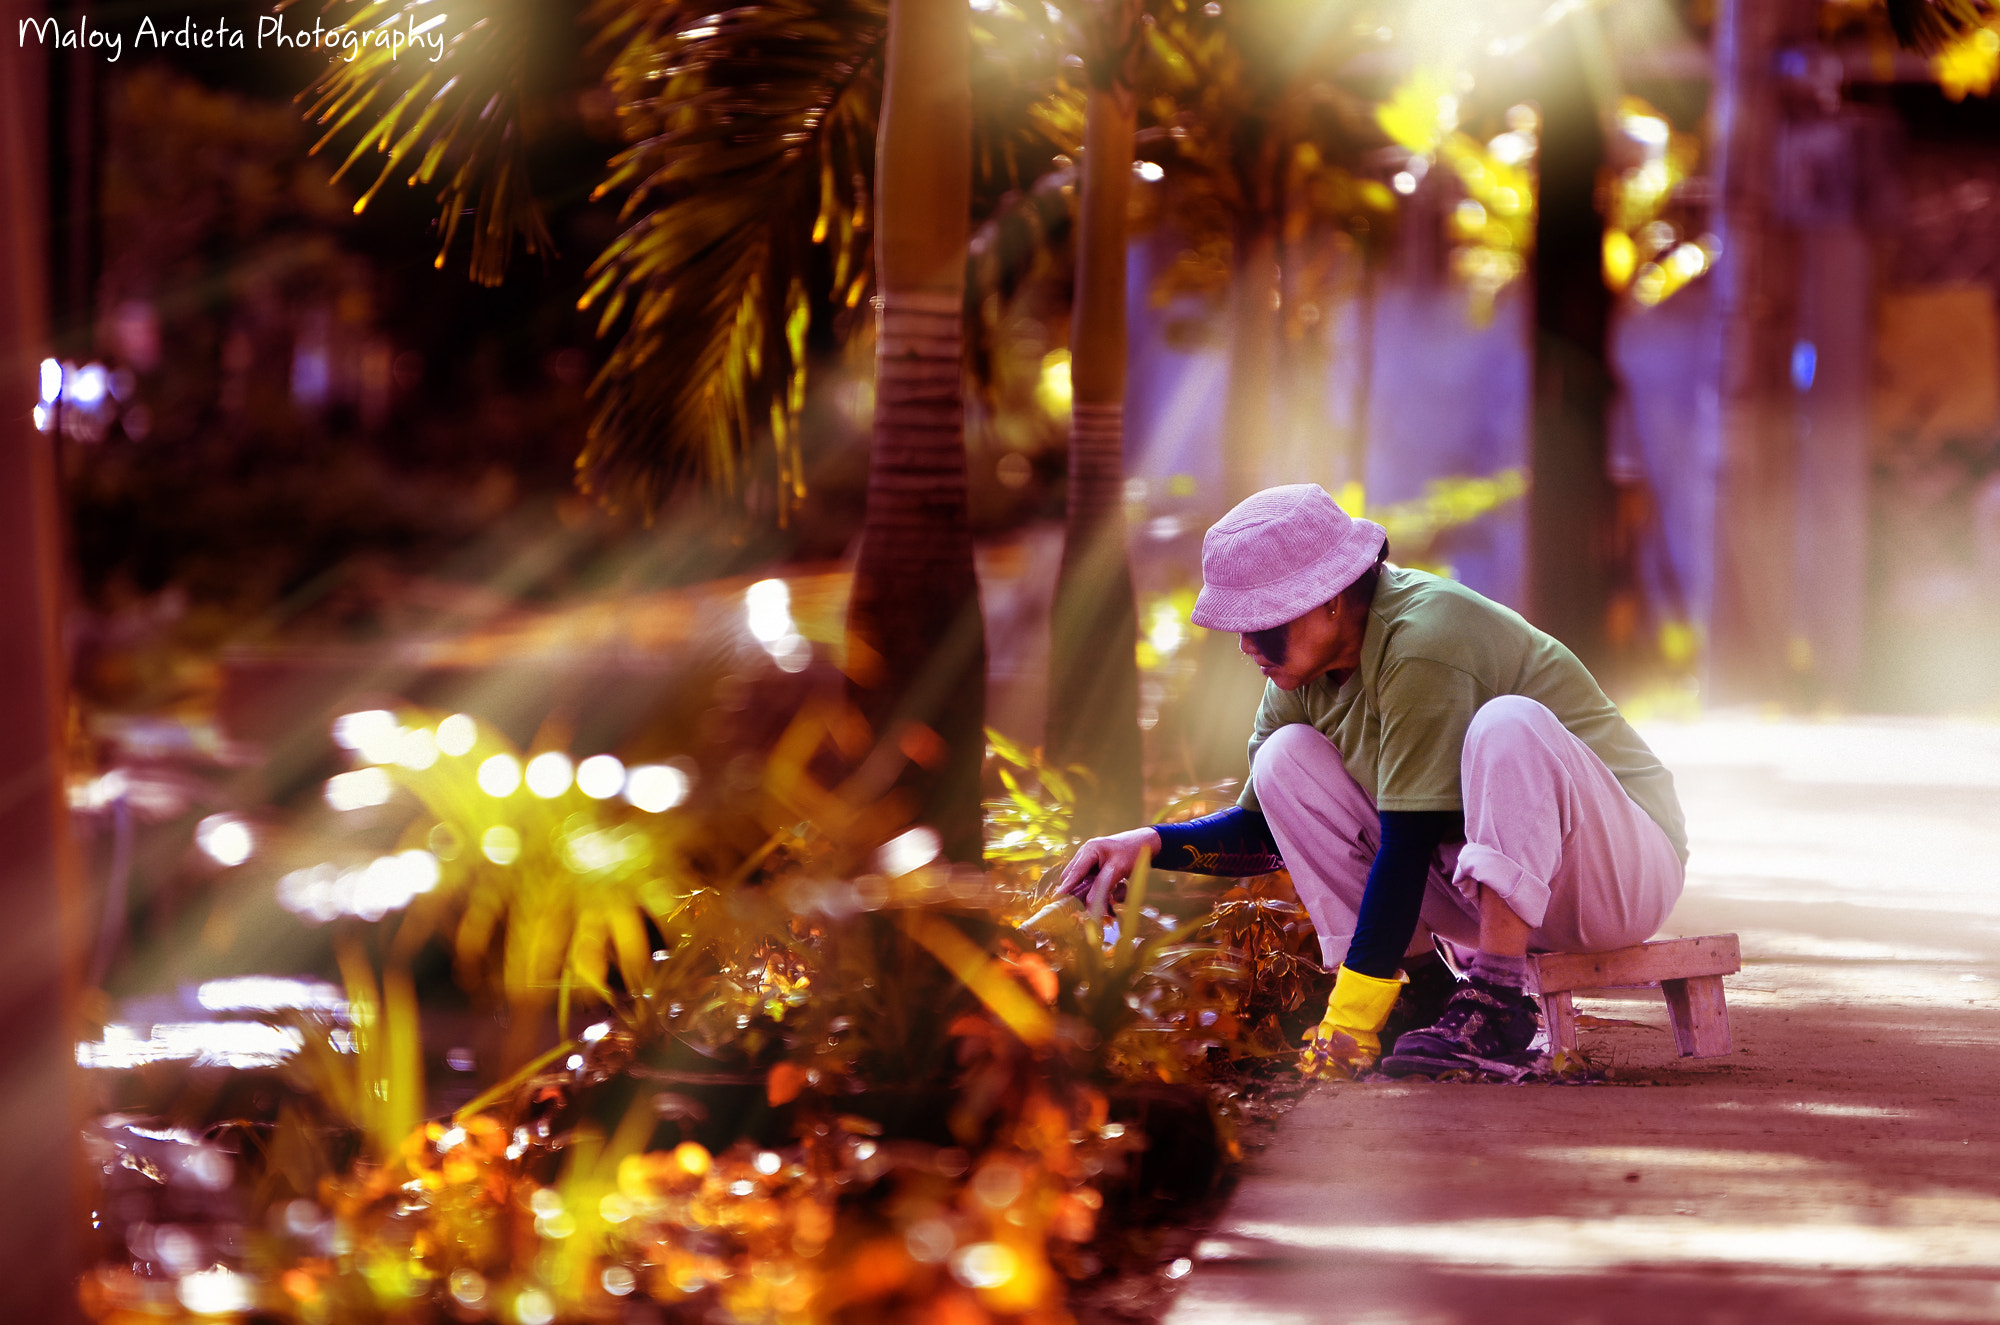 Photograph The Gardener ^_^ by Maloy Ardieta on 500px